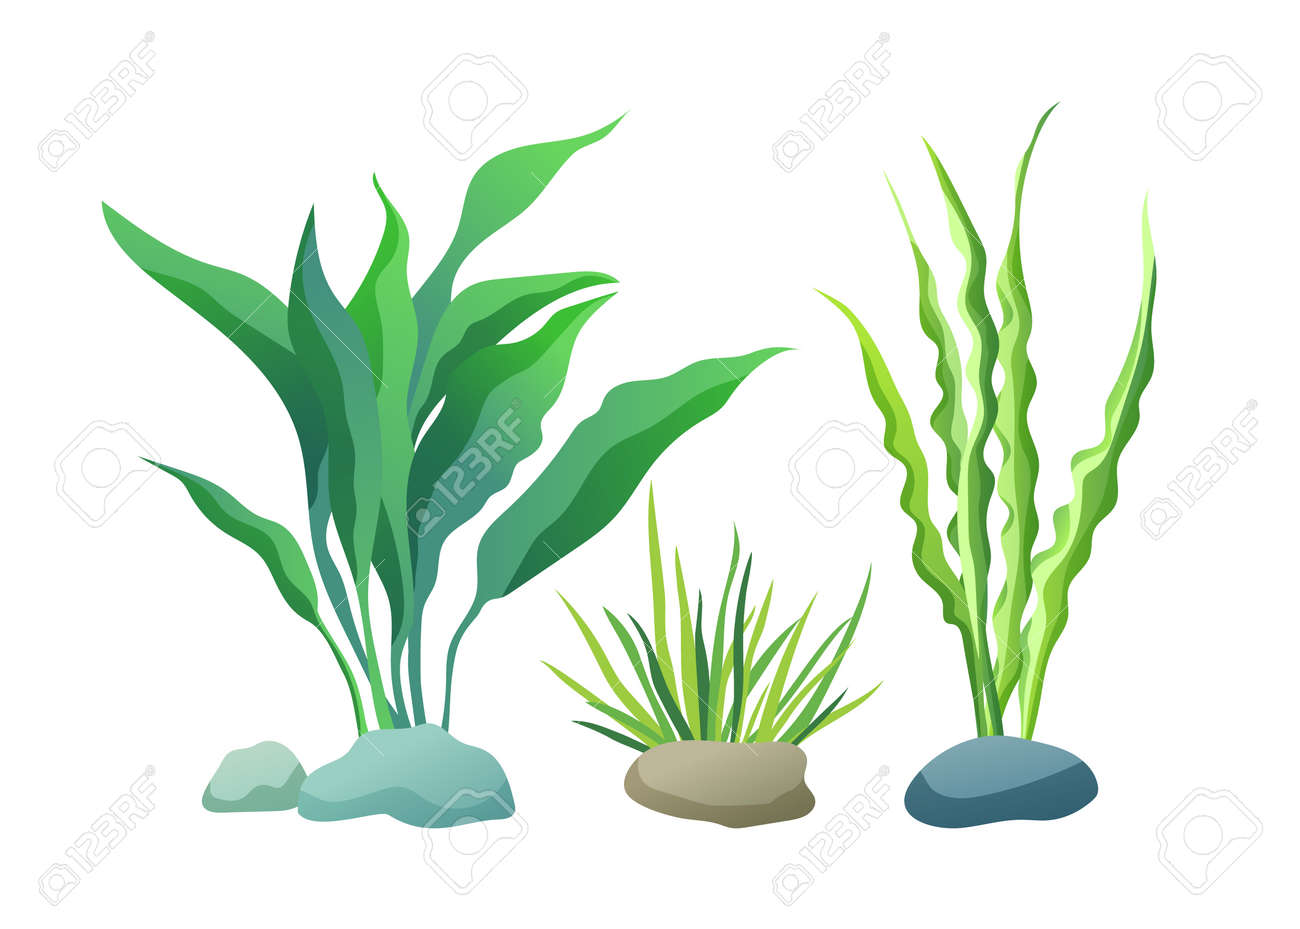 Sea or aquarium algae types vector illustration set on white. Straight and wavy seaweed with large and small leaved, green and violet colored poster. - 127558698